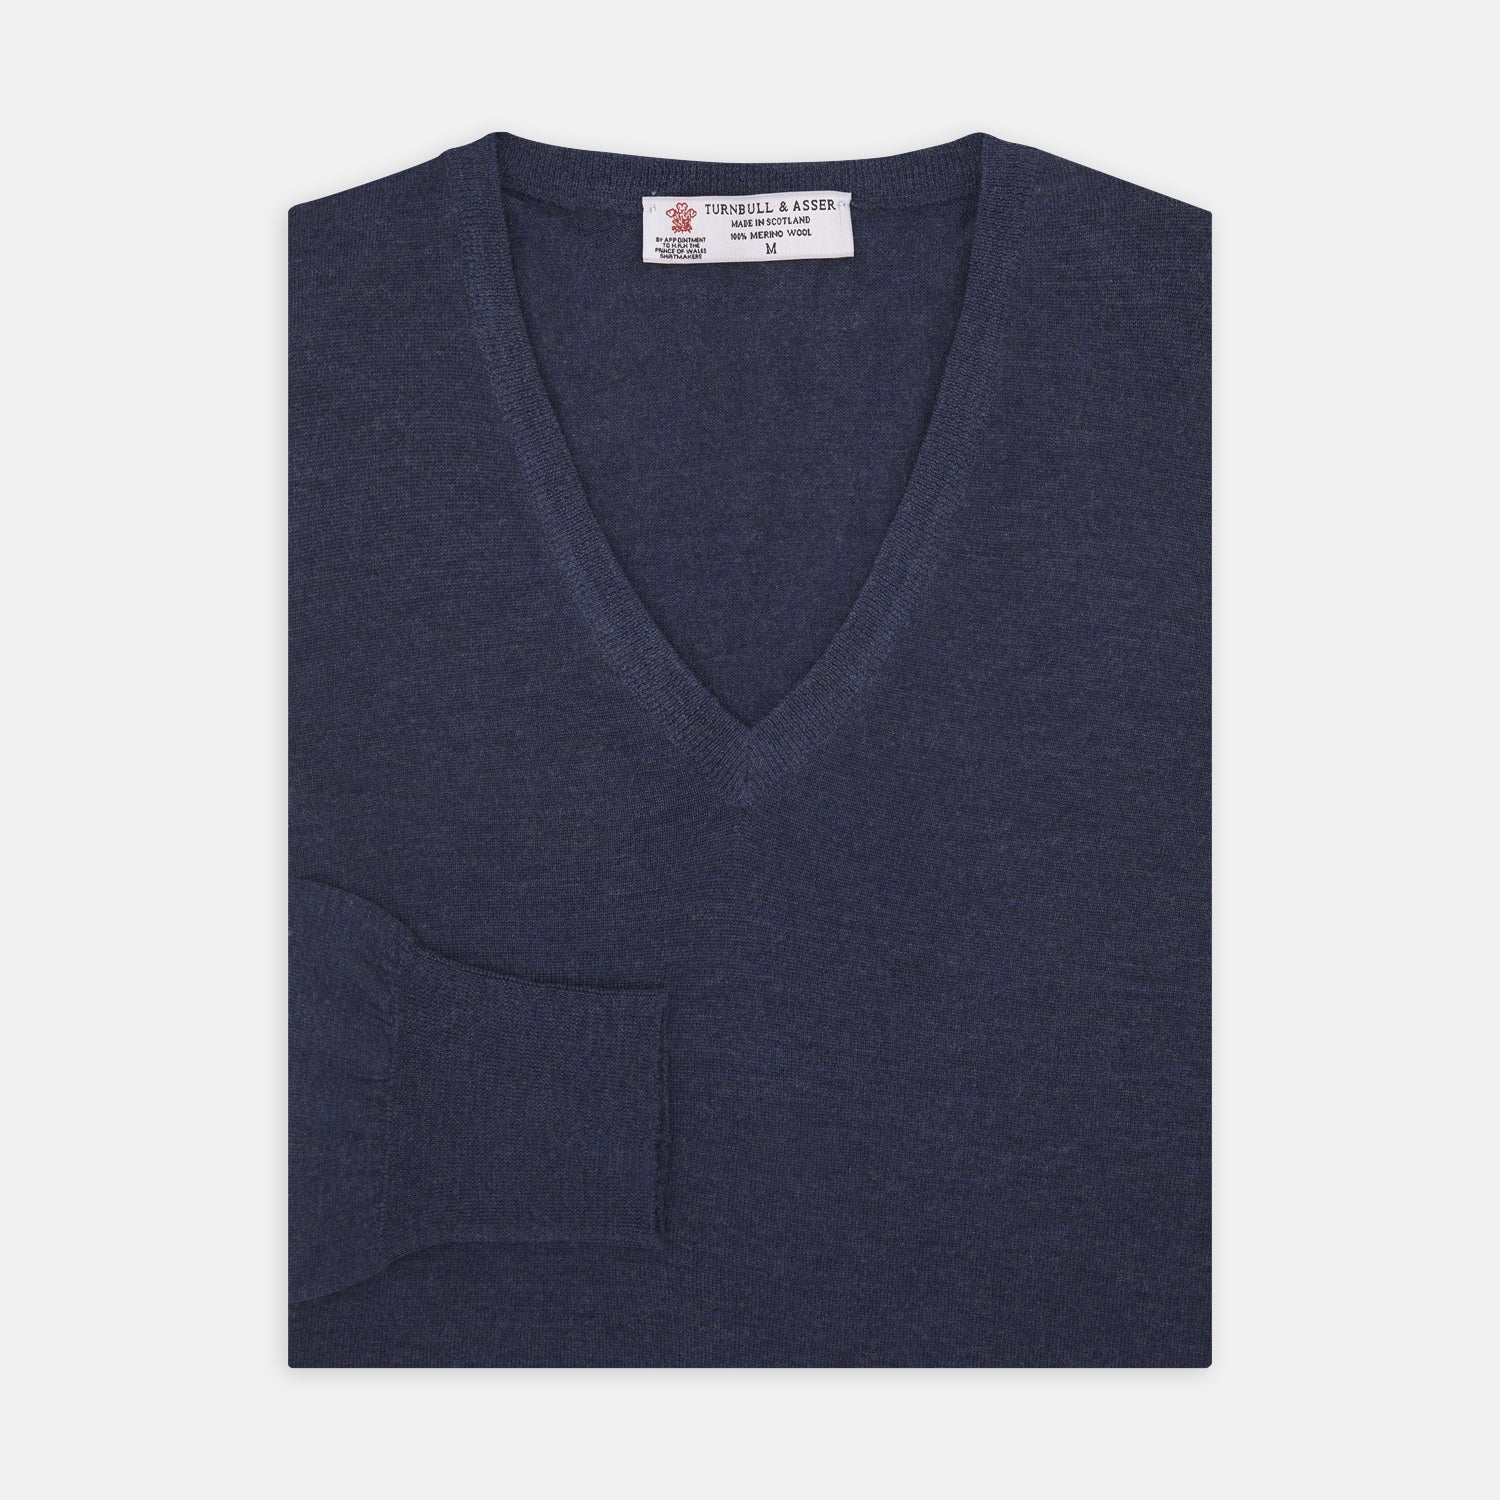 Blue V-Neck Merino Wool Jumper - S from Turnbull & Asser